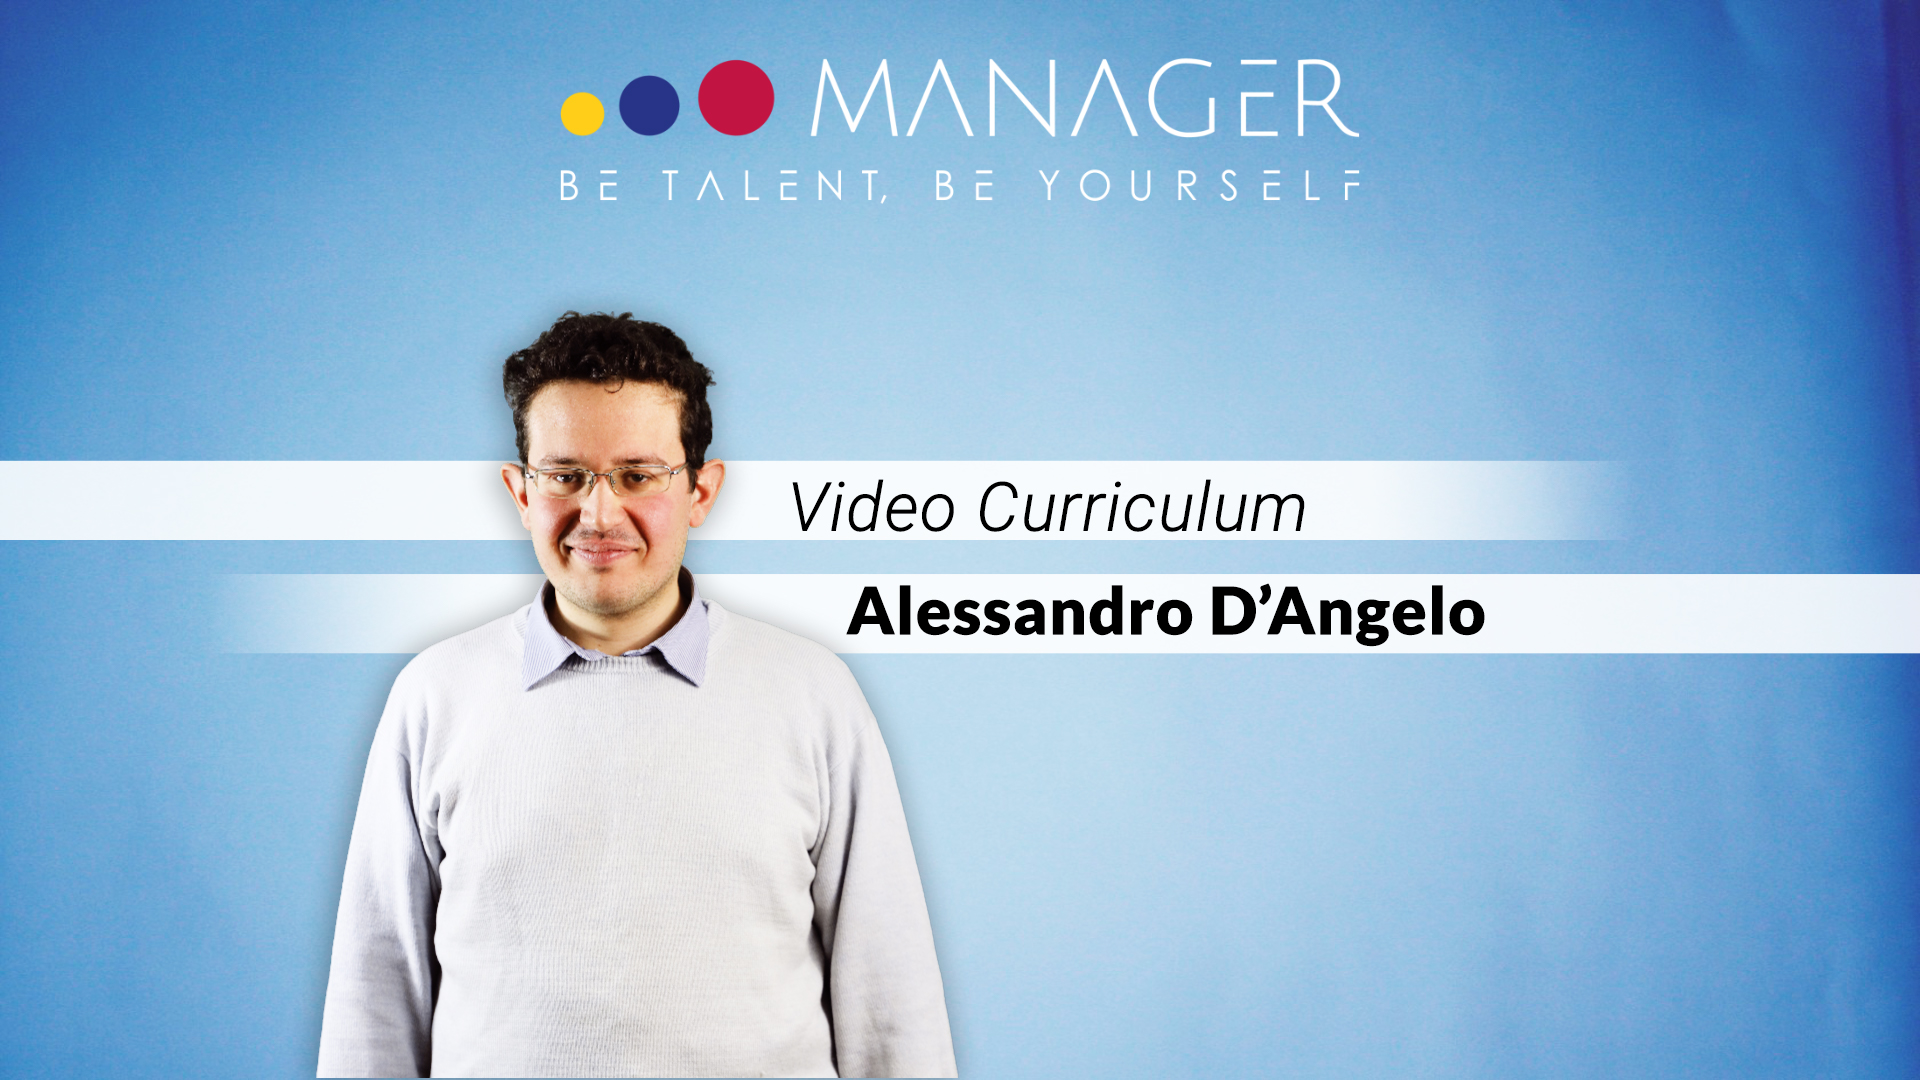 video curriculum Alessandro D'Angelo